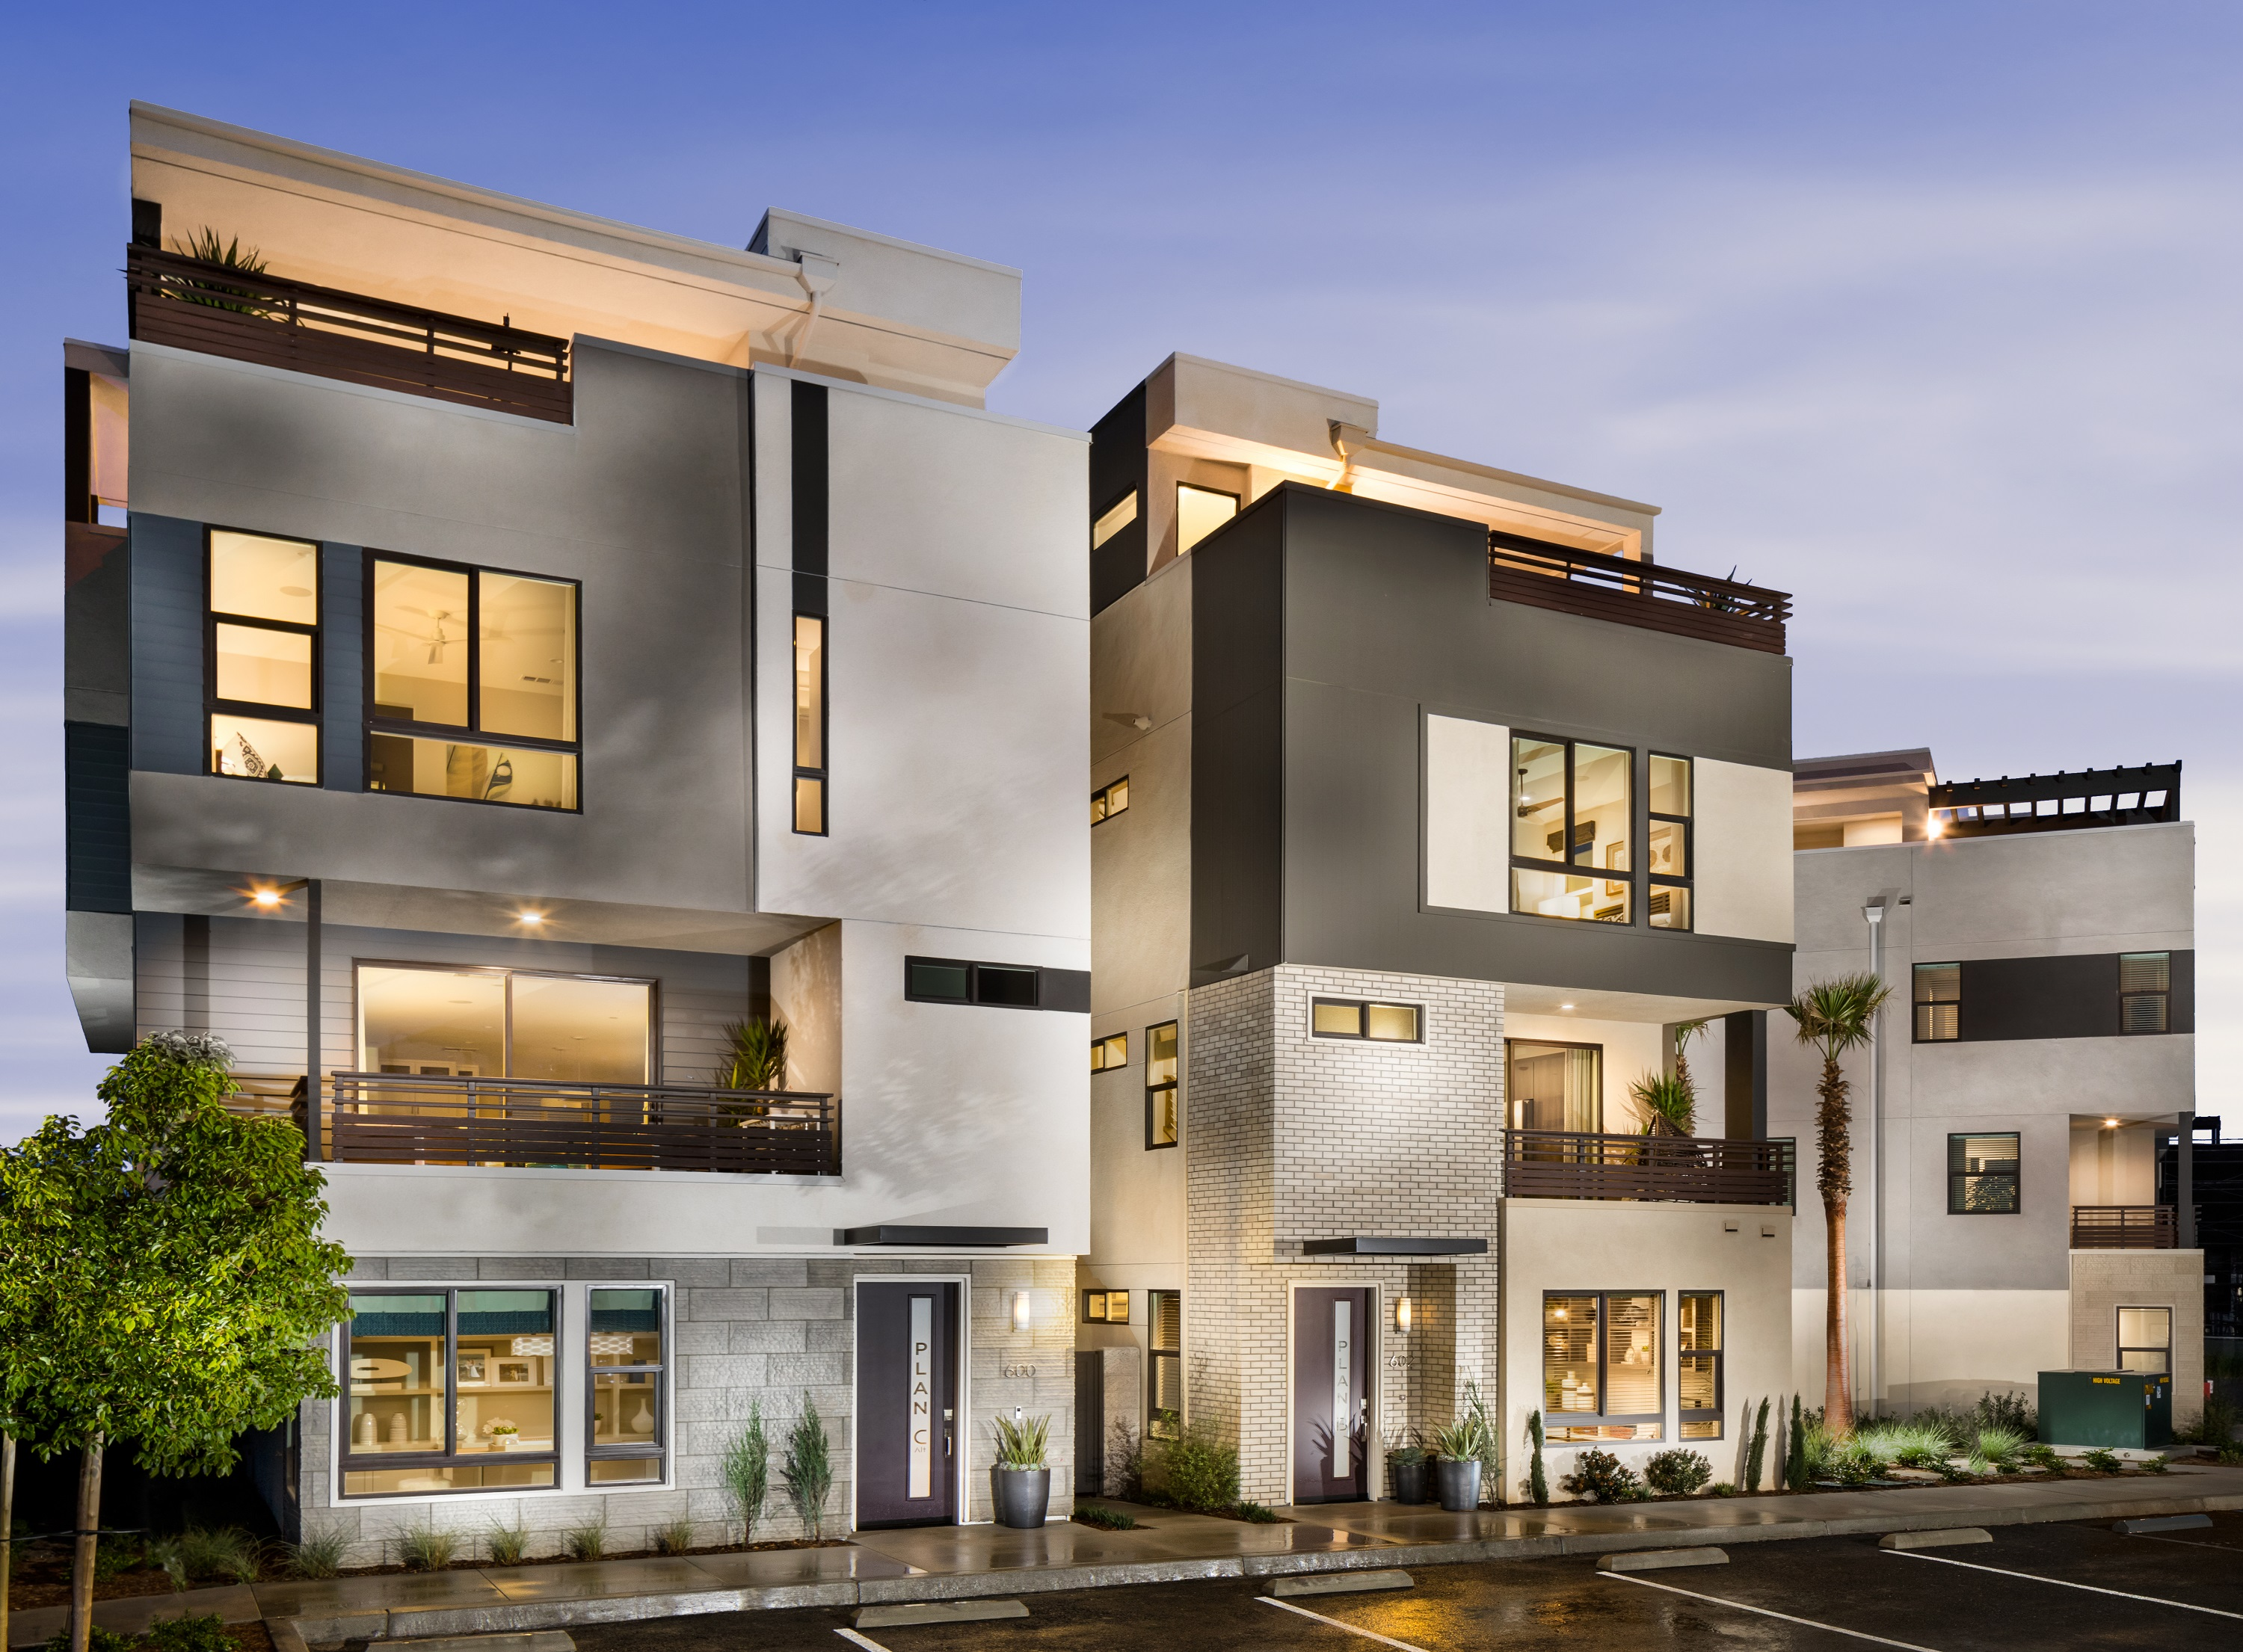 The Place – Creating value in Costa Mesa featured image